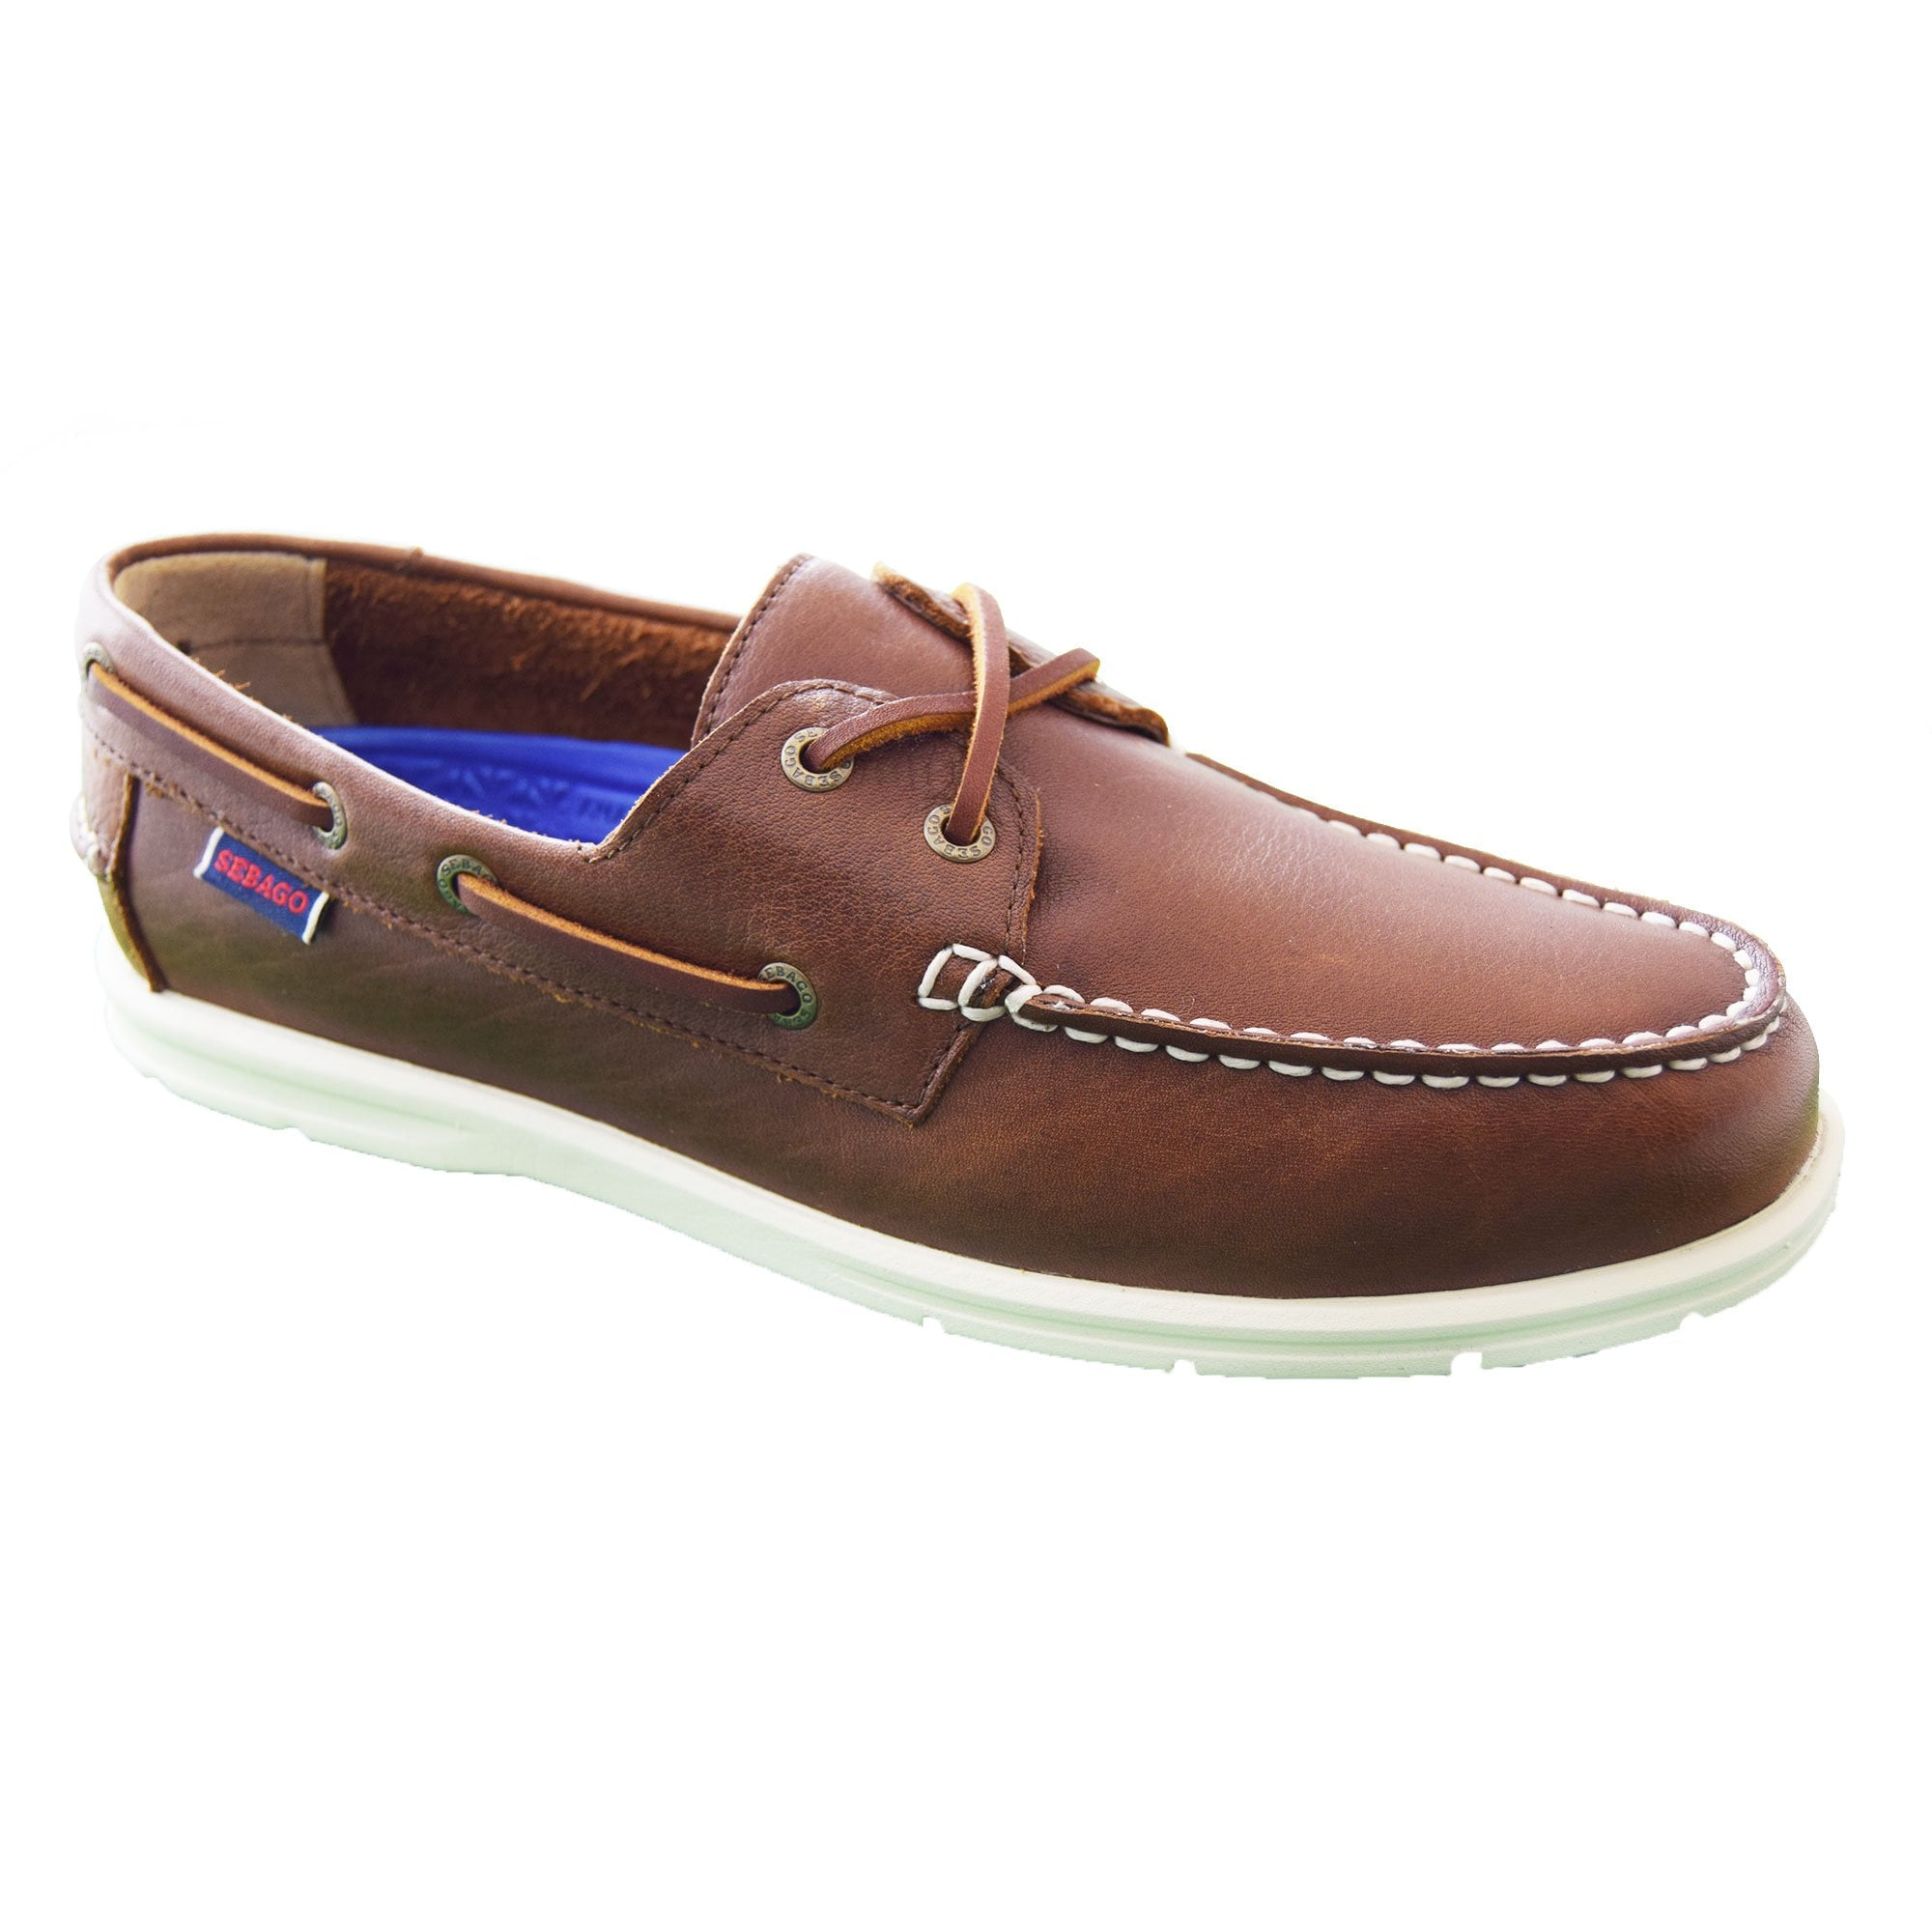 Sebago LITESIDES Ladies Womens Leather Casual Two Eyelet Casual Deck Boat Shoes